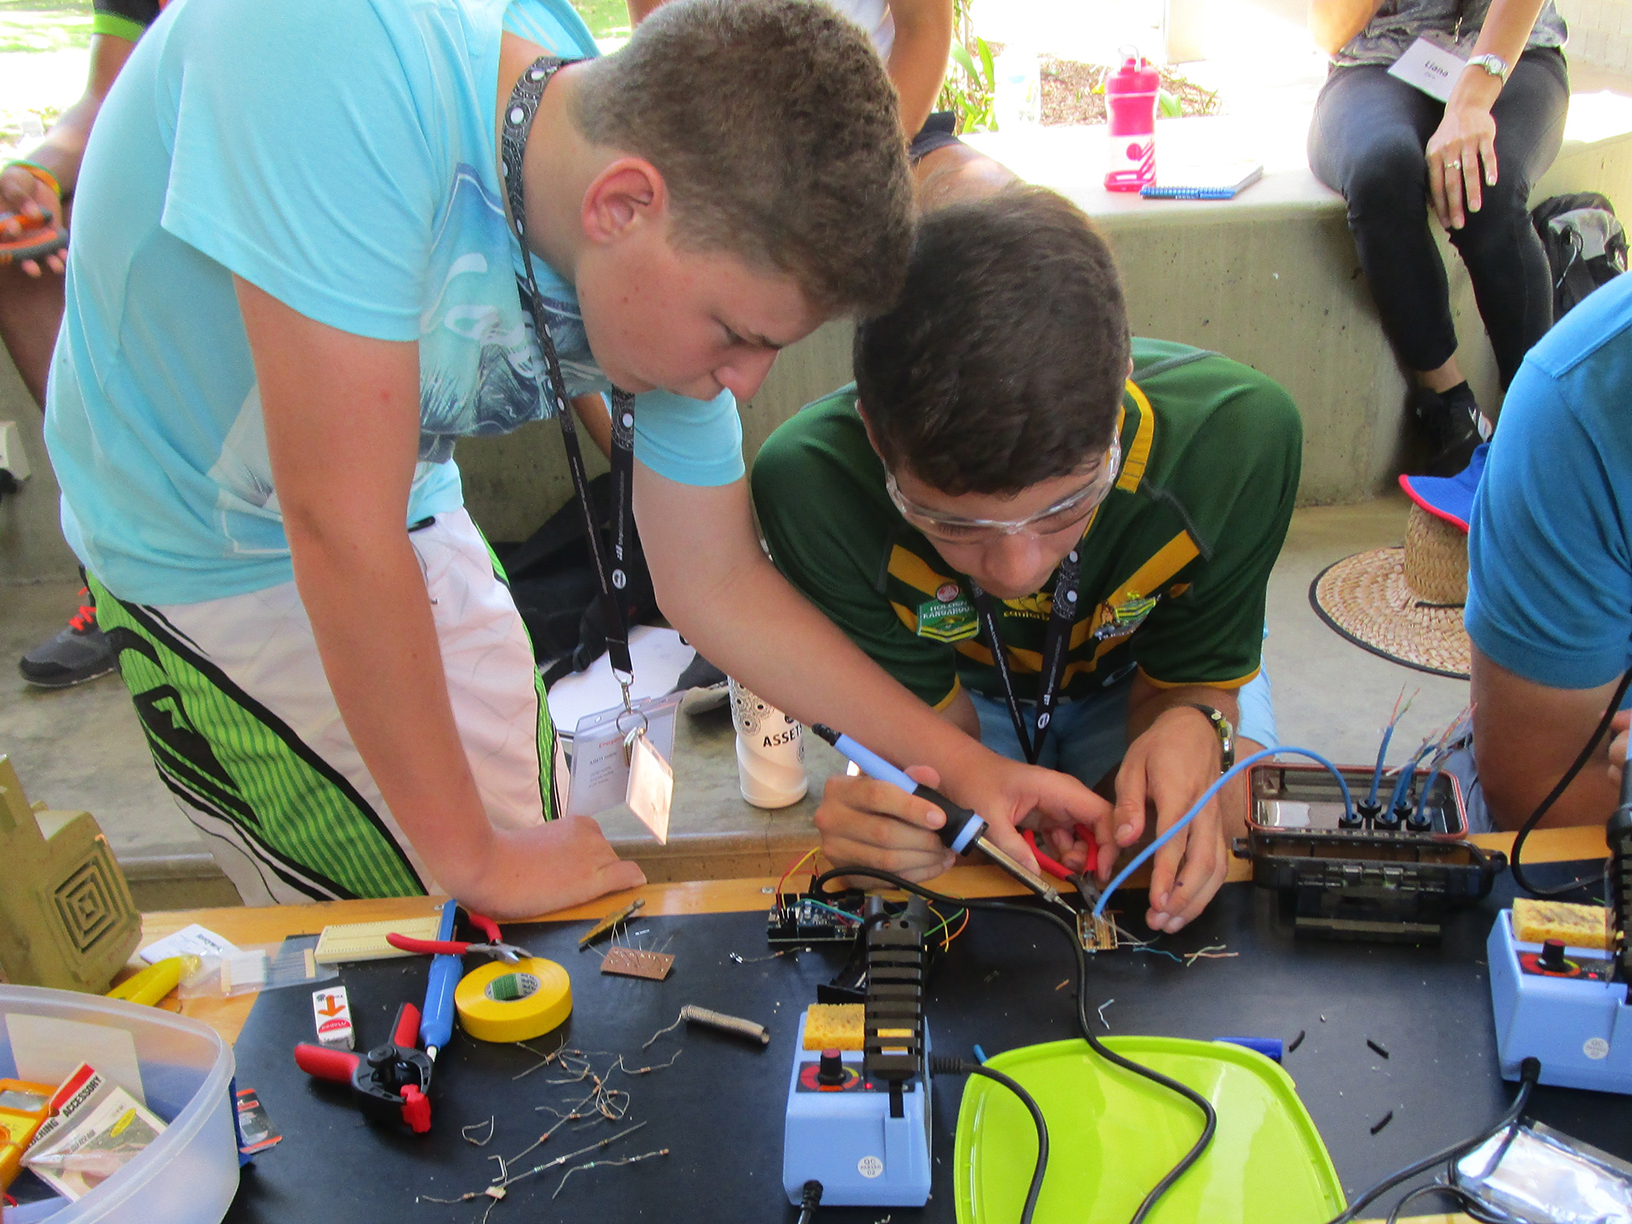 Two students soldering a sensor together